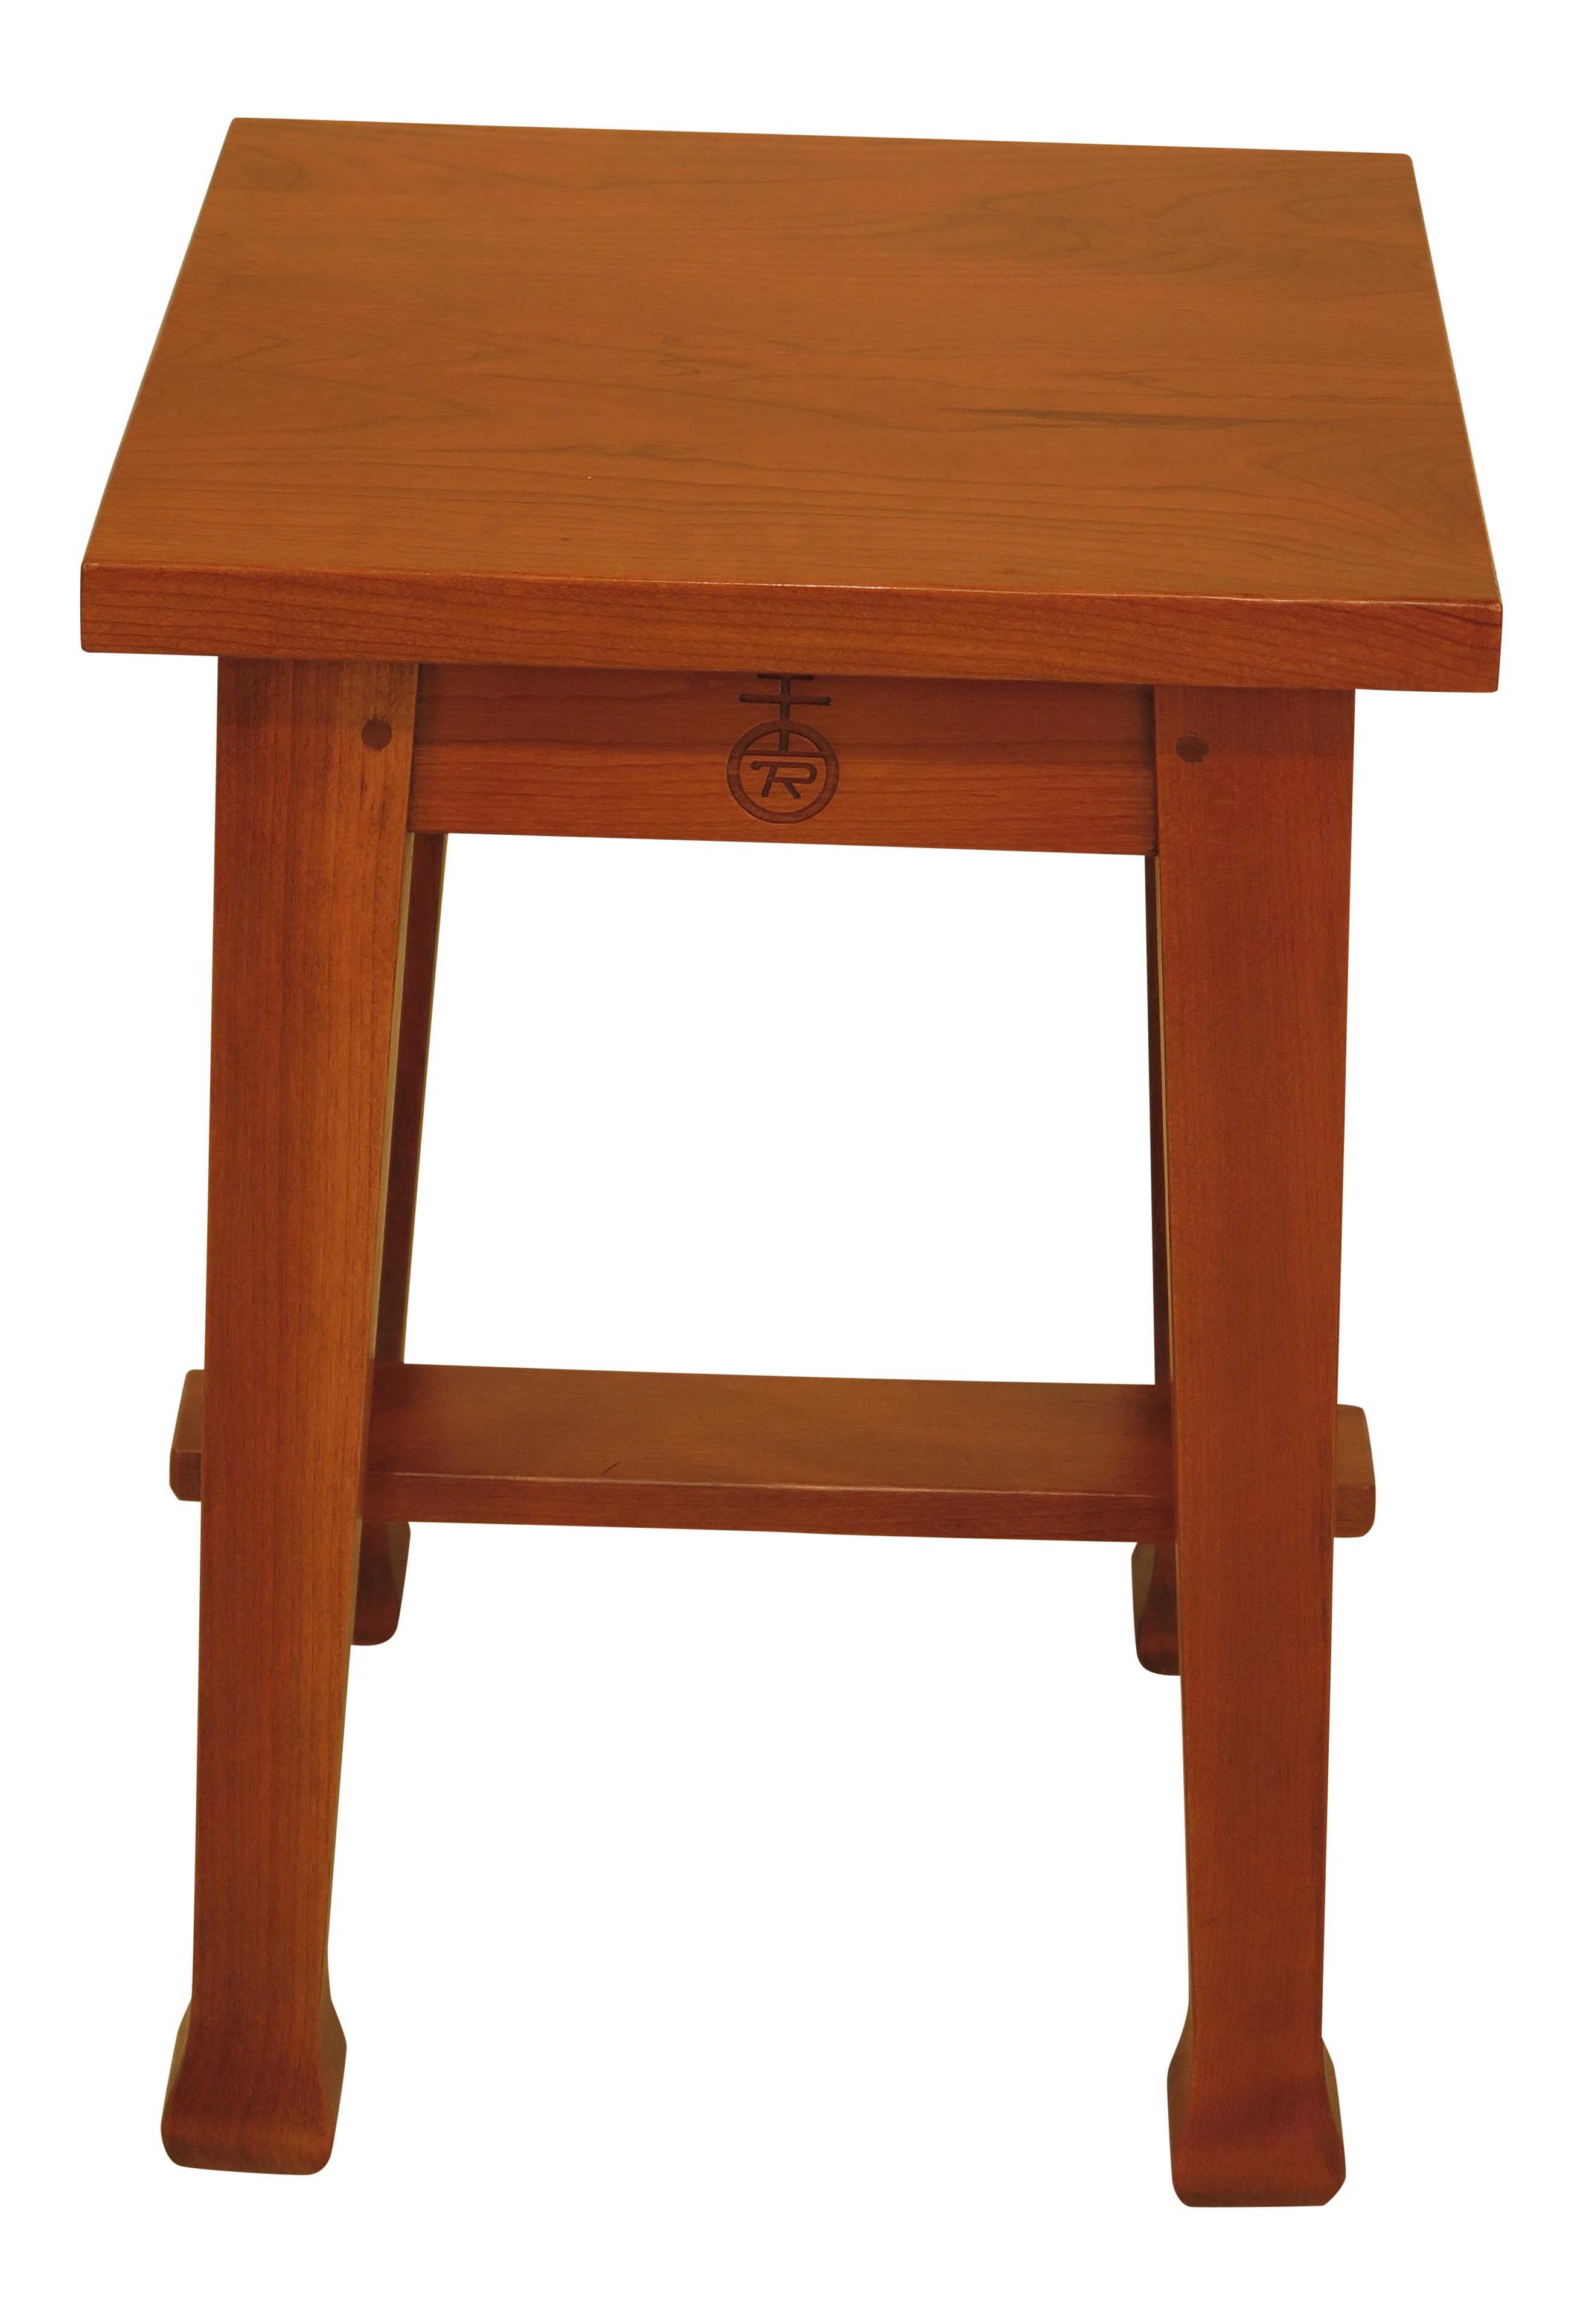 Stickley Roycroft Model Cherry Tabouret Occasional Table